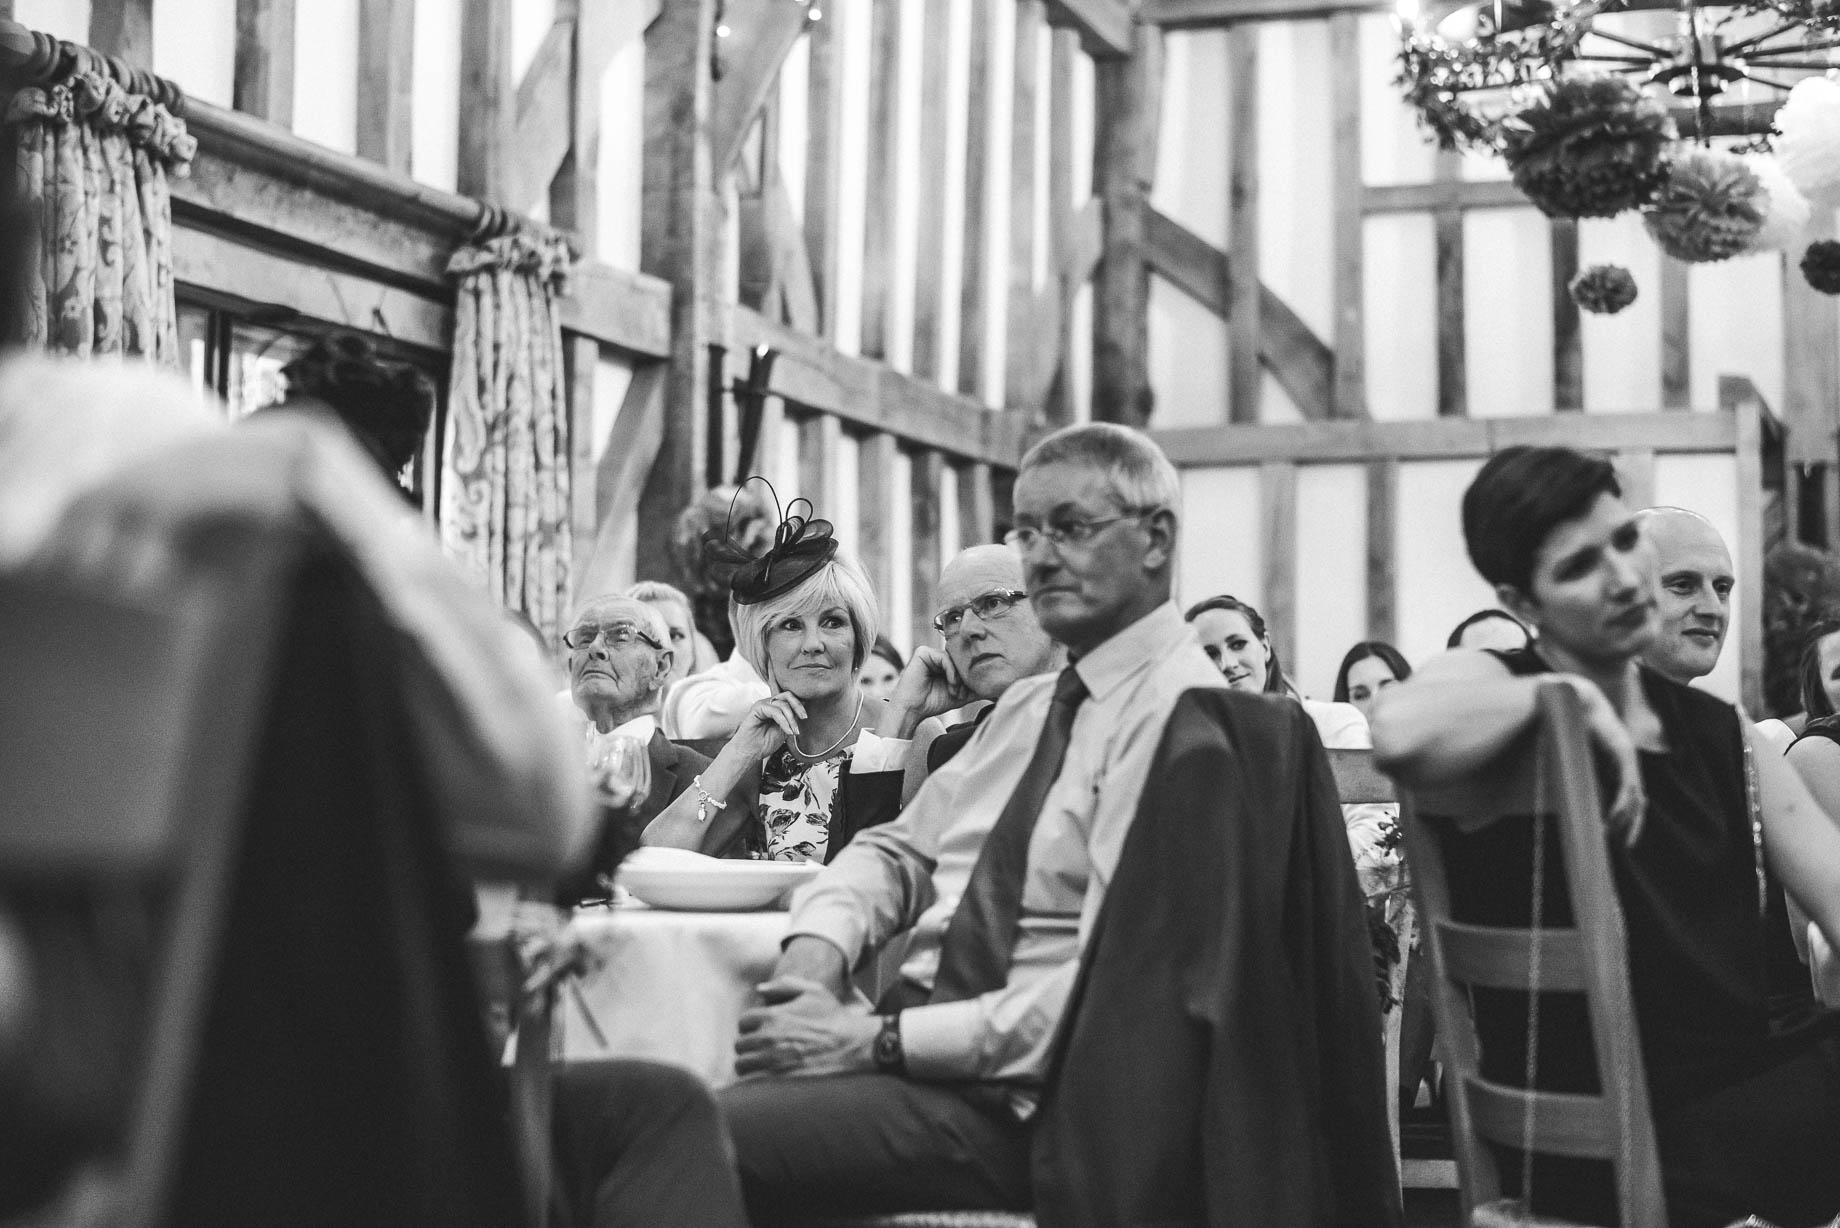 Gate Street Barn wedding photography - Guy Collier - Claire and Andy (137 of 192)